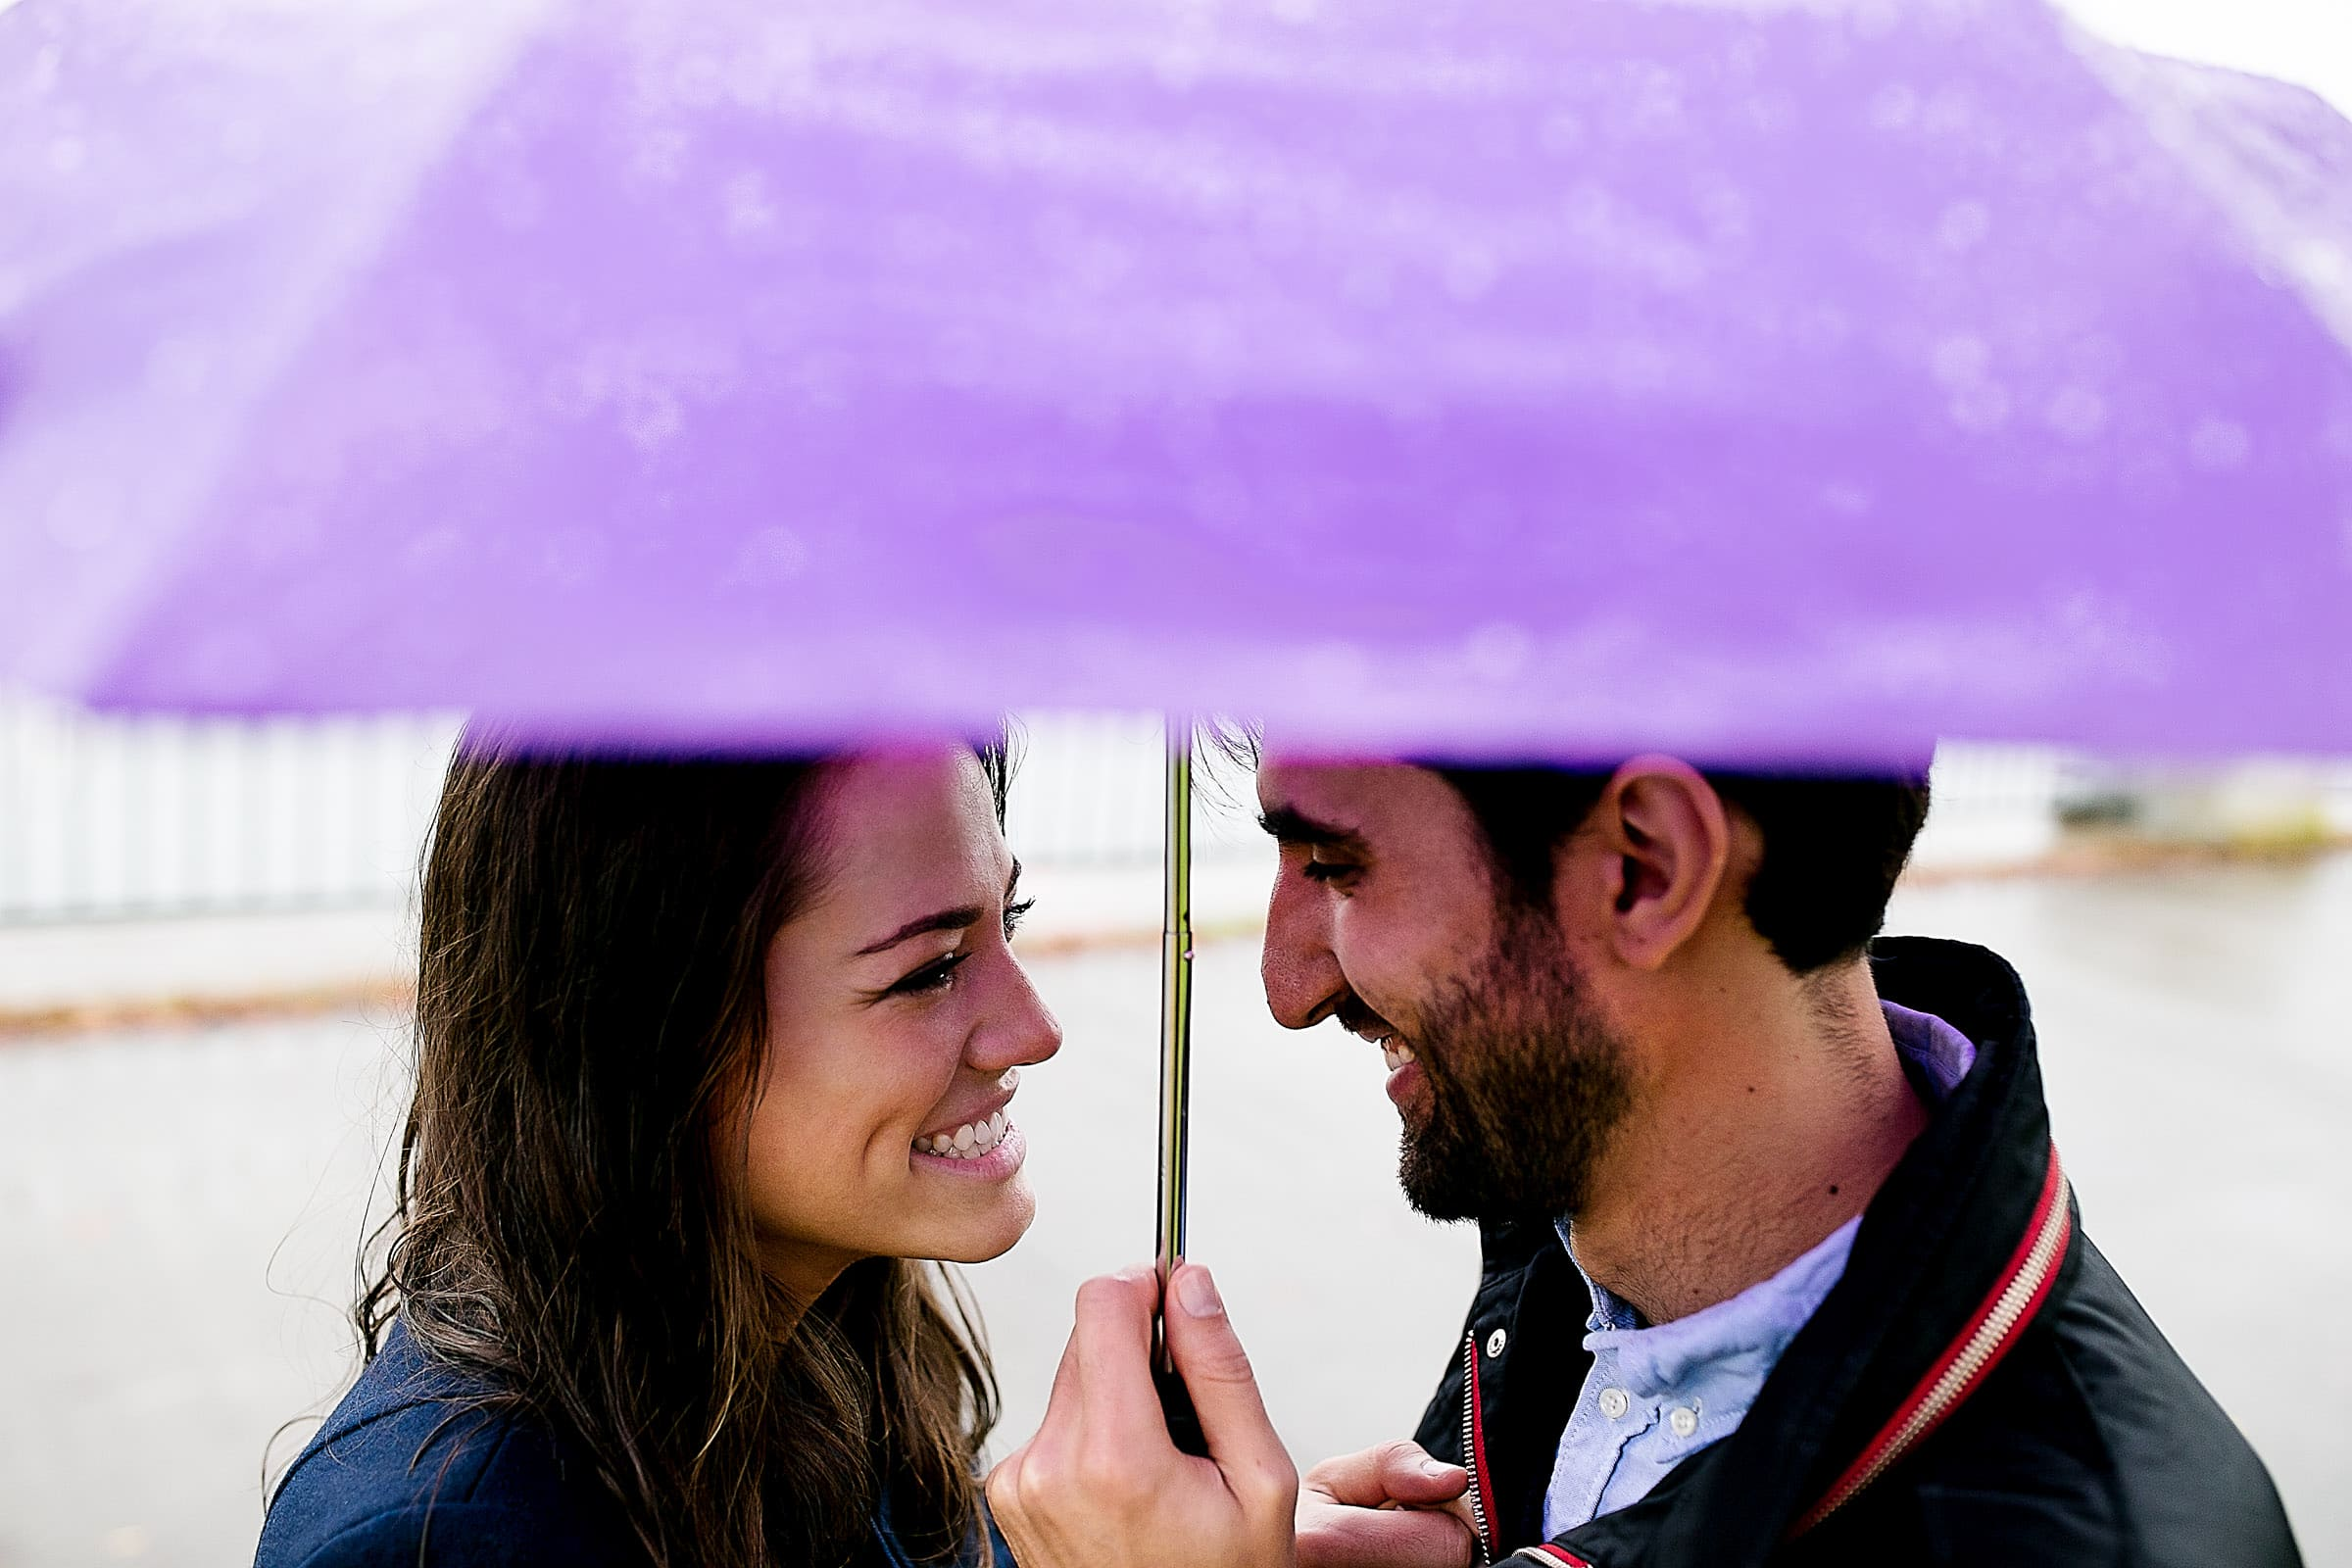 A fun Portland engagement proposal photo under an umbrella on the waterfront park